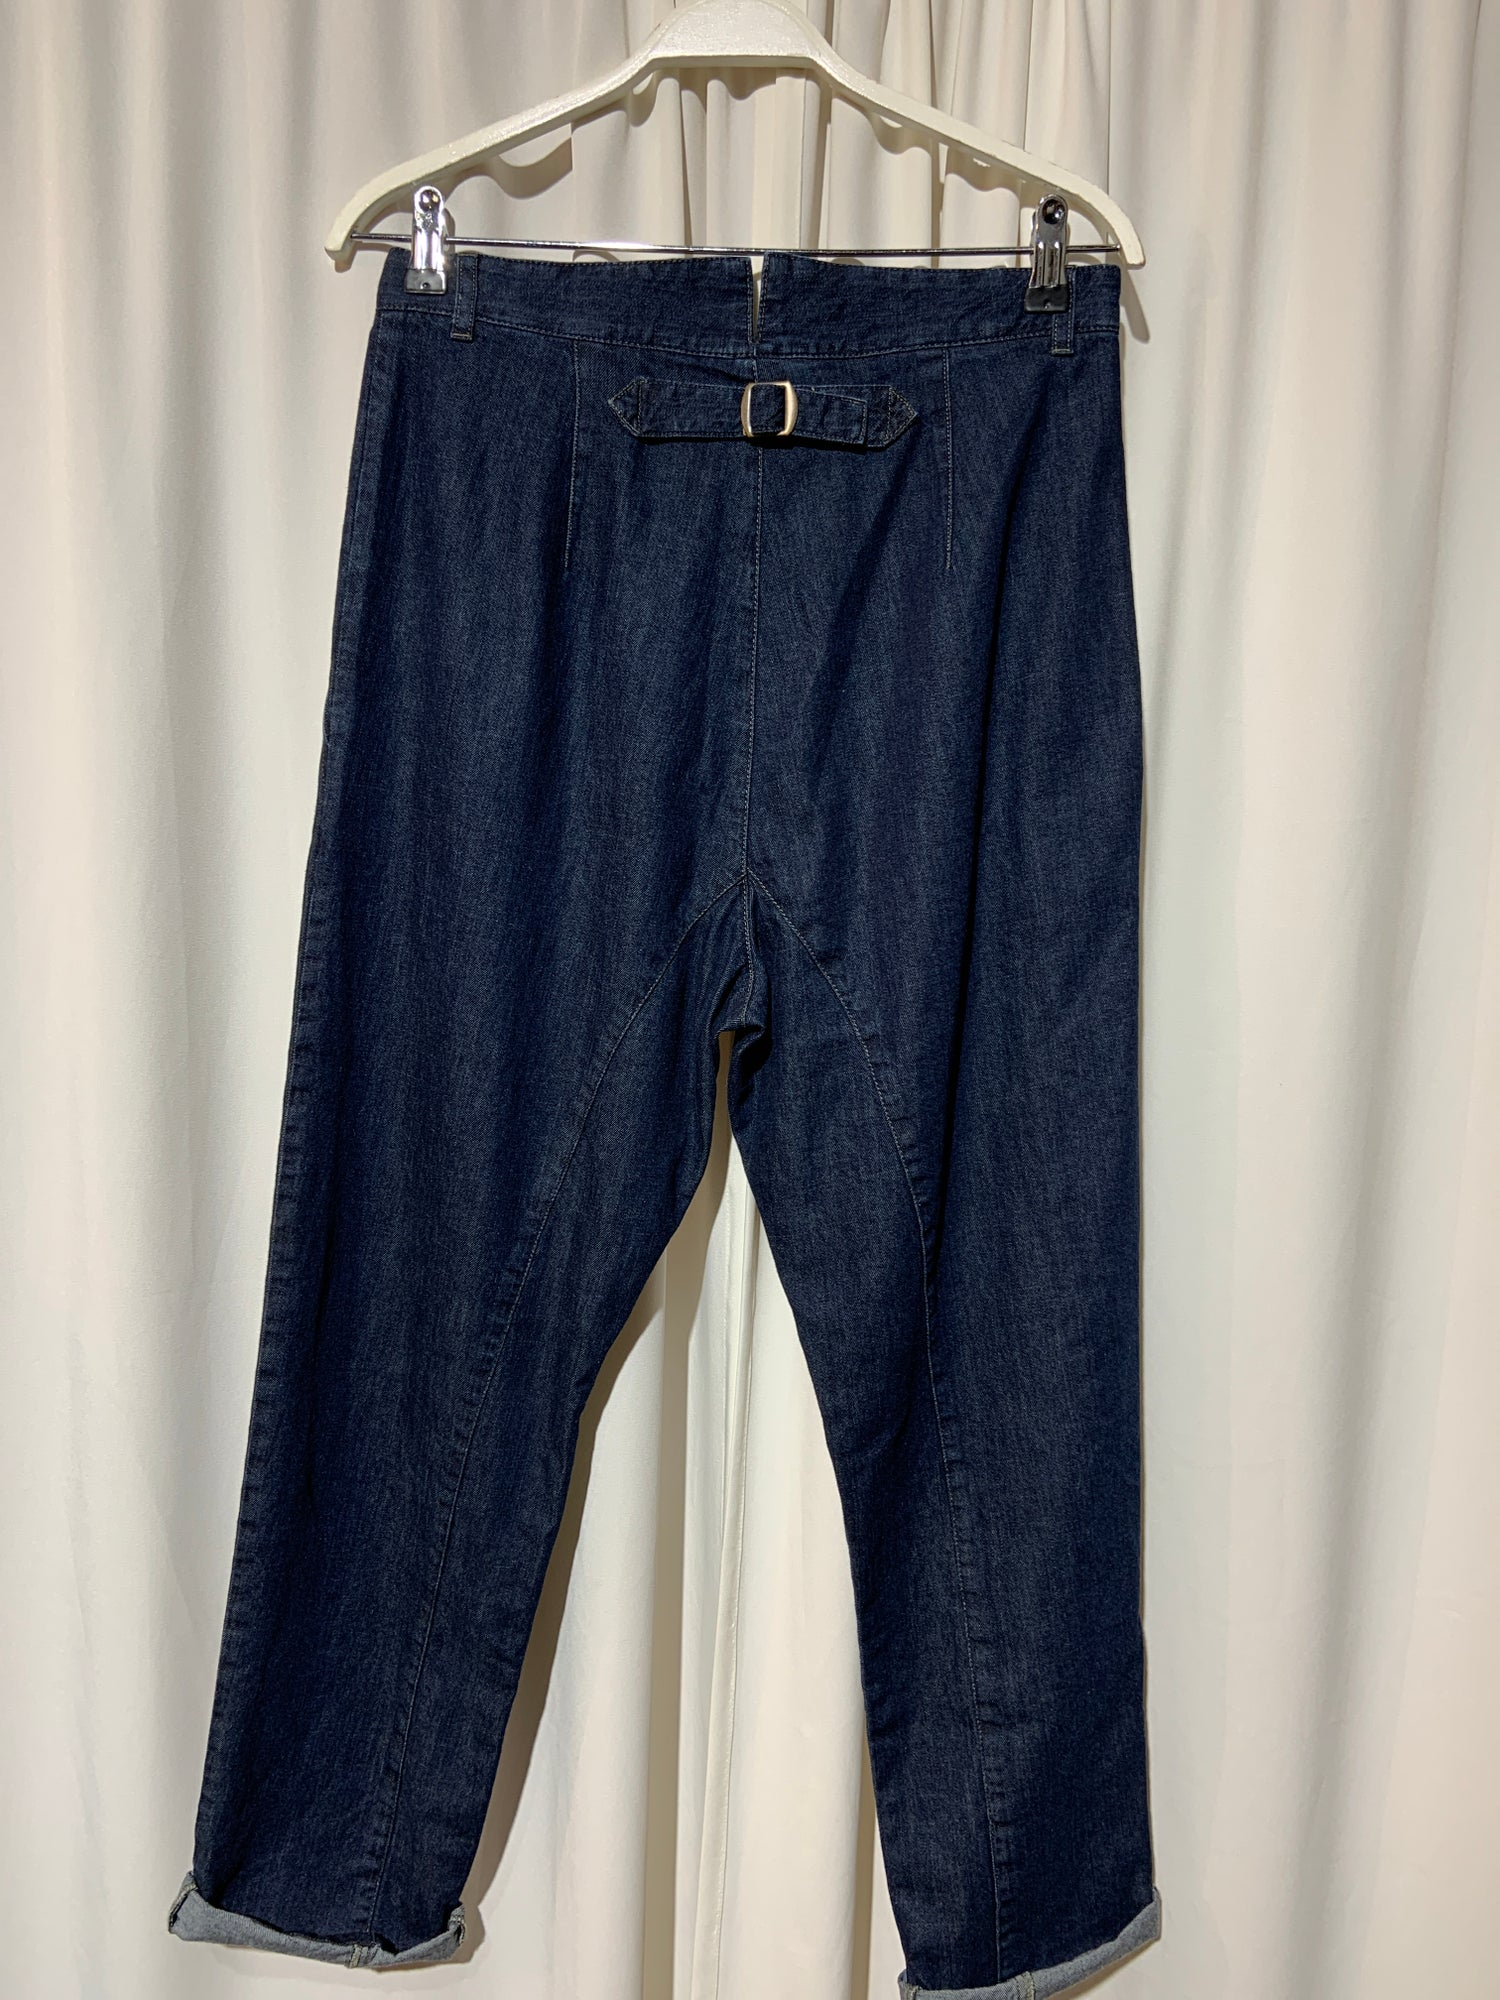 Image of NYGARDSANNA Buckle Back trousers